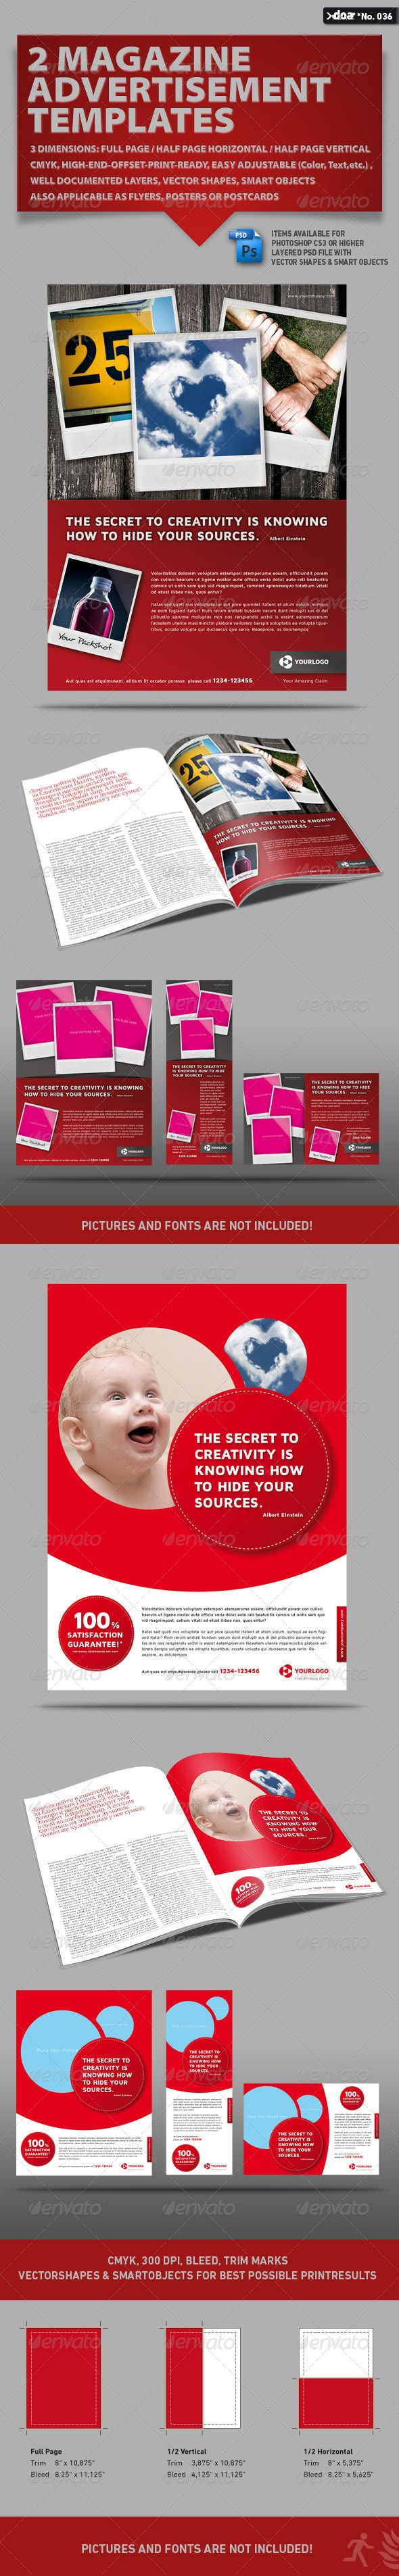 half page advertisement template